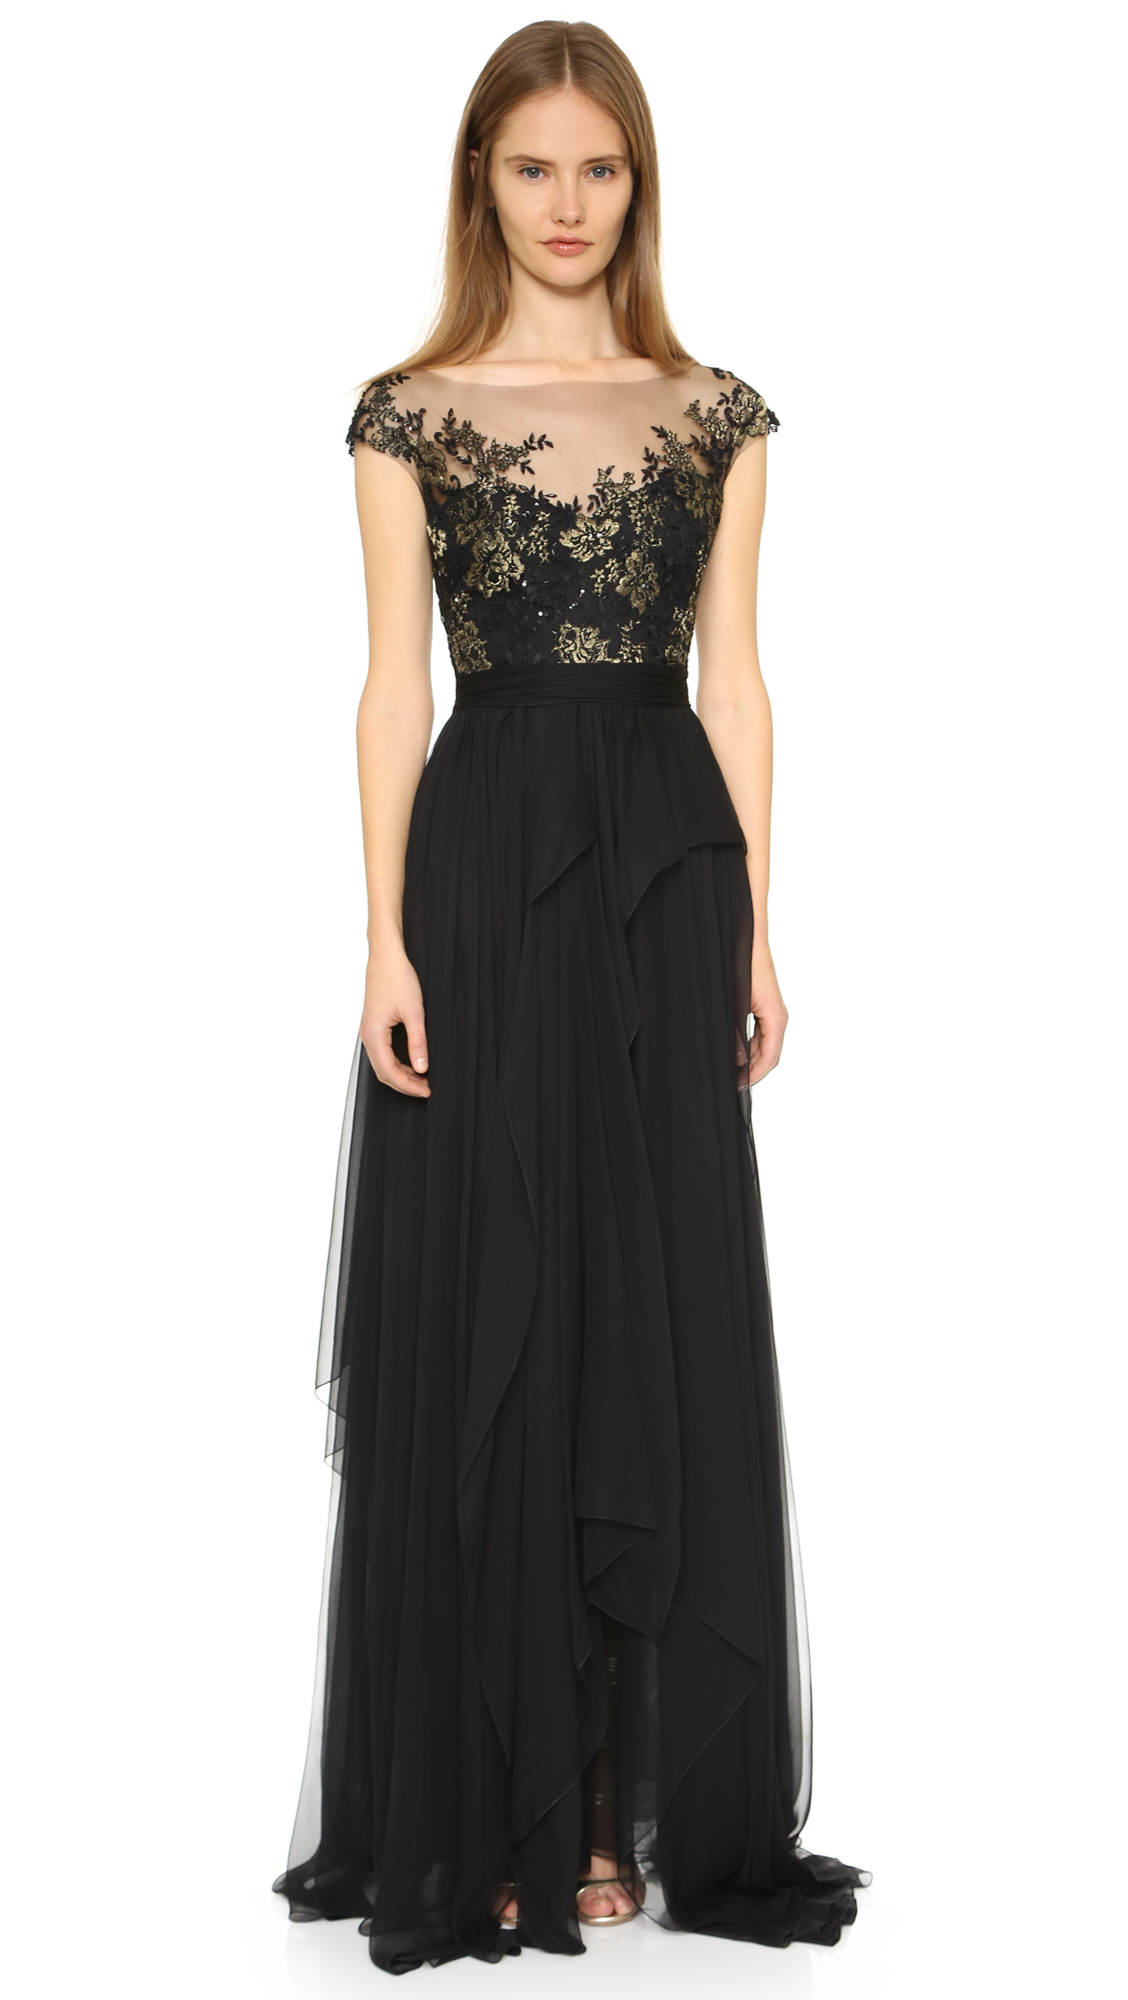 Lyst - Reem Acra Lace and Silk-Chiffon Gown in Black